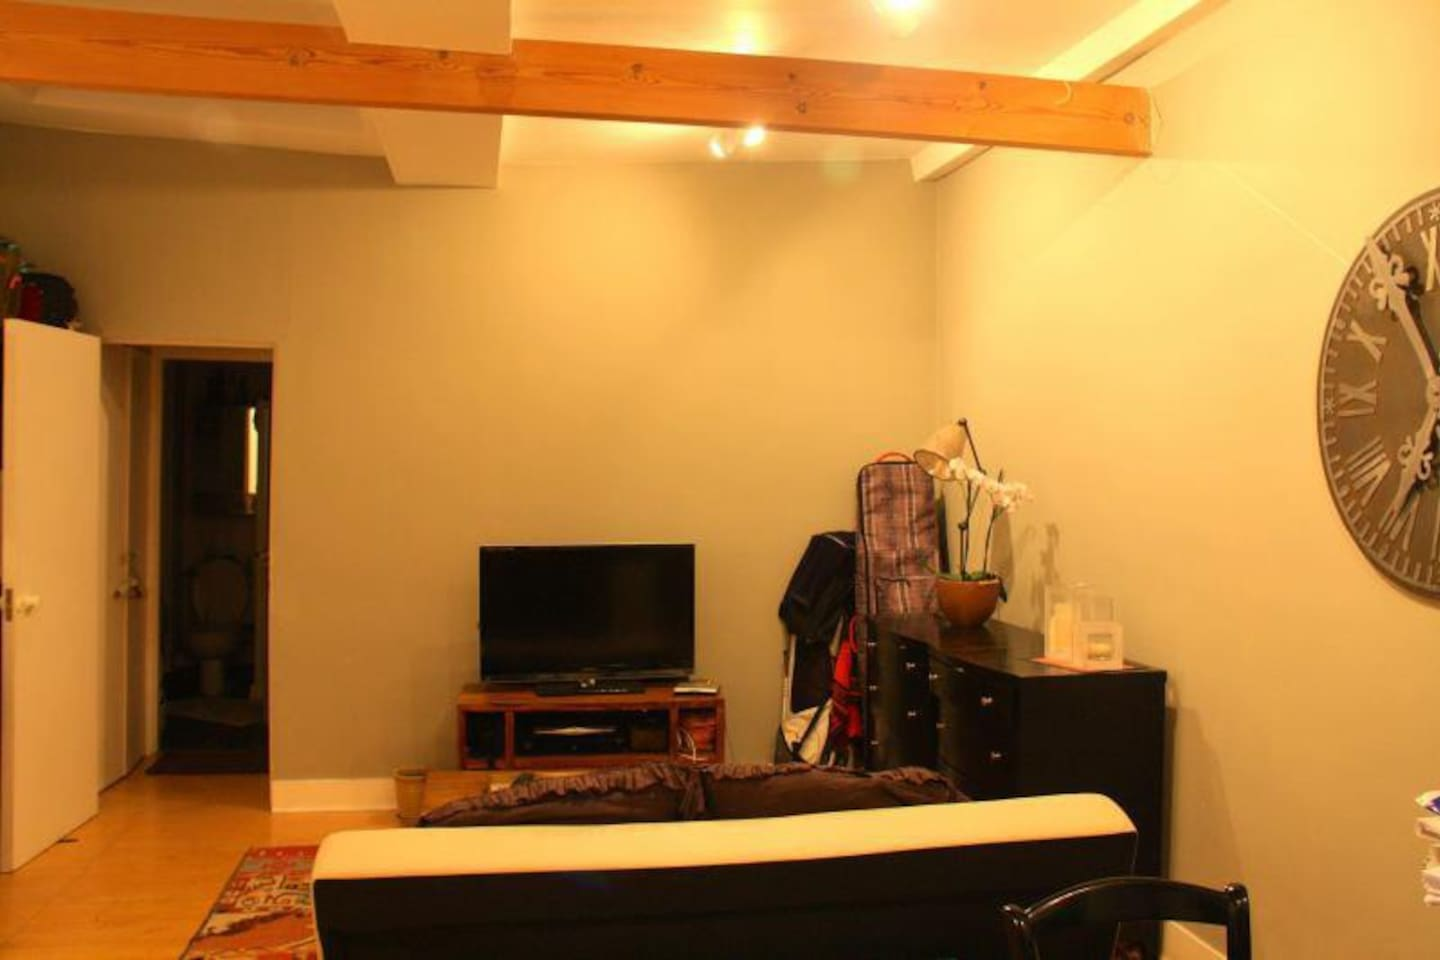 Sofa bed for guests, large flat screen TV